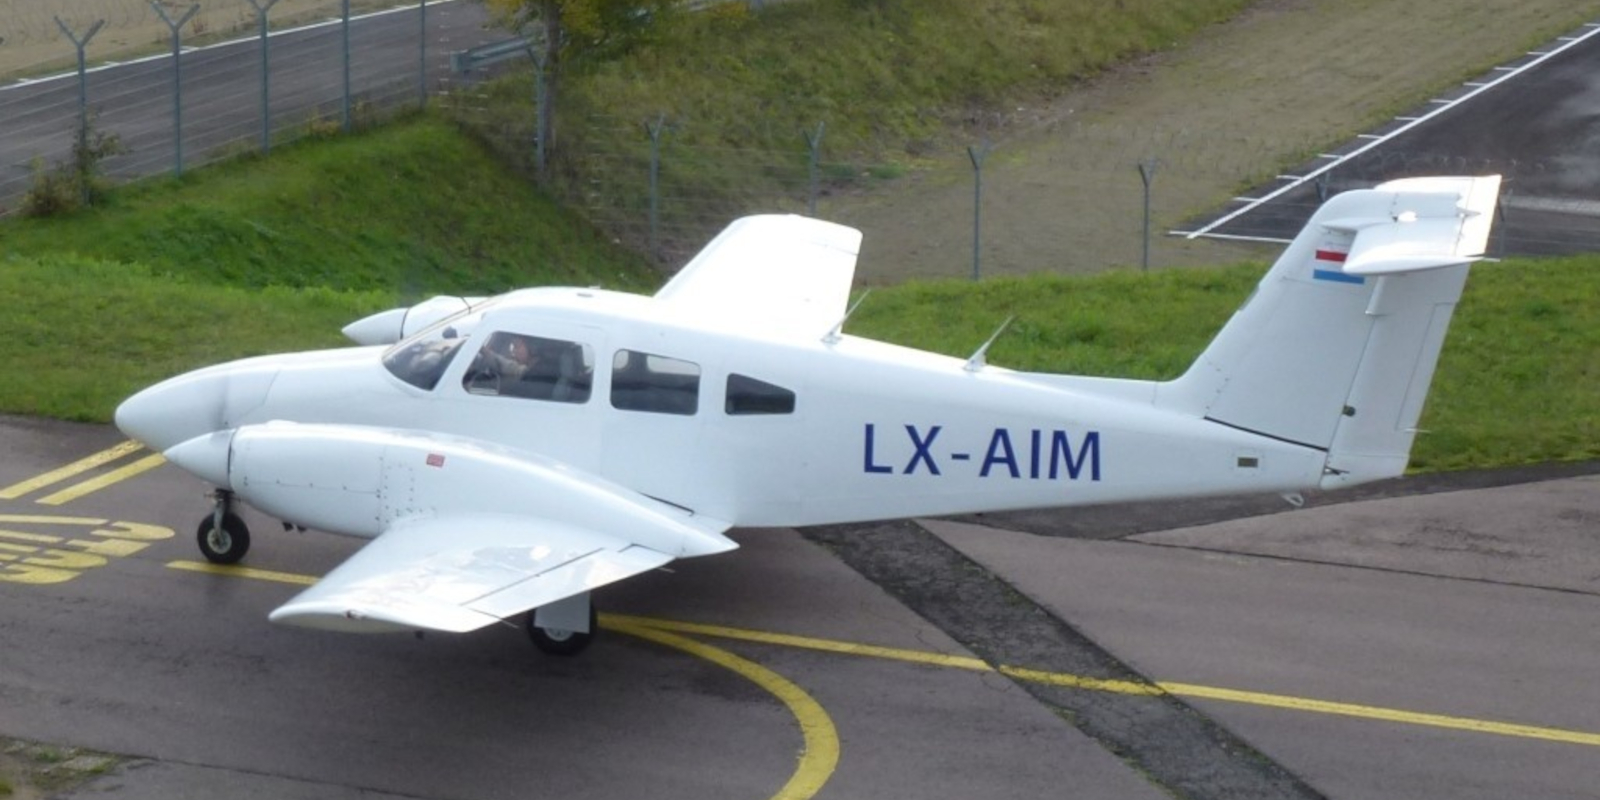 AERO-SPORT is the largest and most active aviation club in Luxembourg. We have more than 600 members and a fleet of 12 reliable and well maintained aircraft.